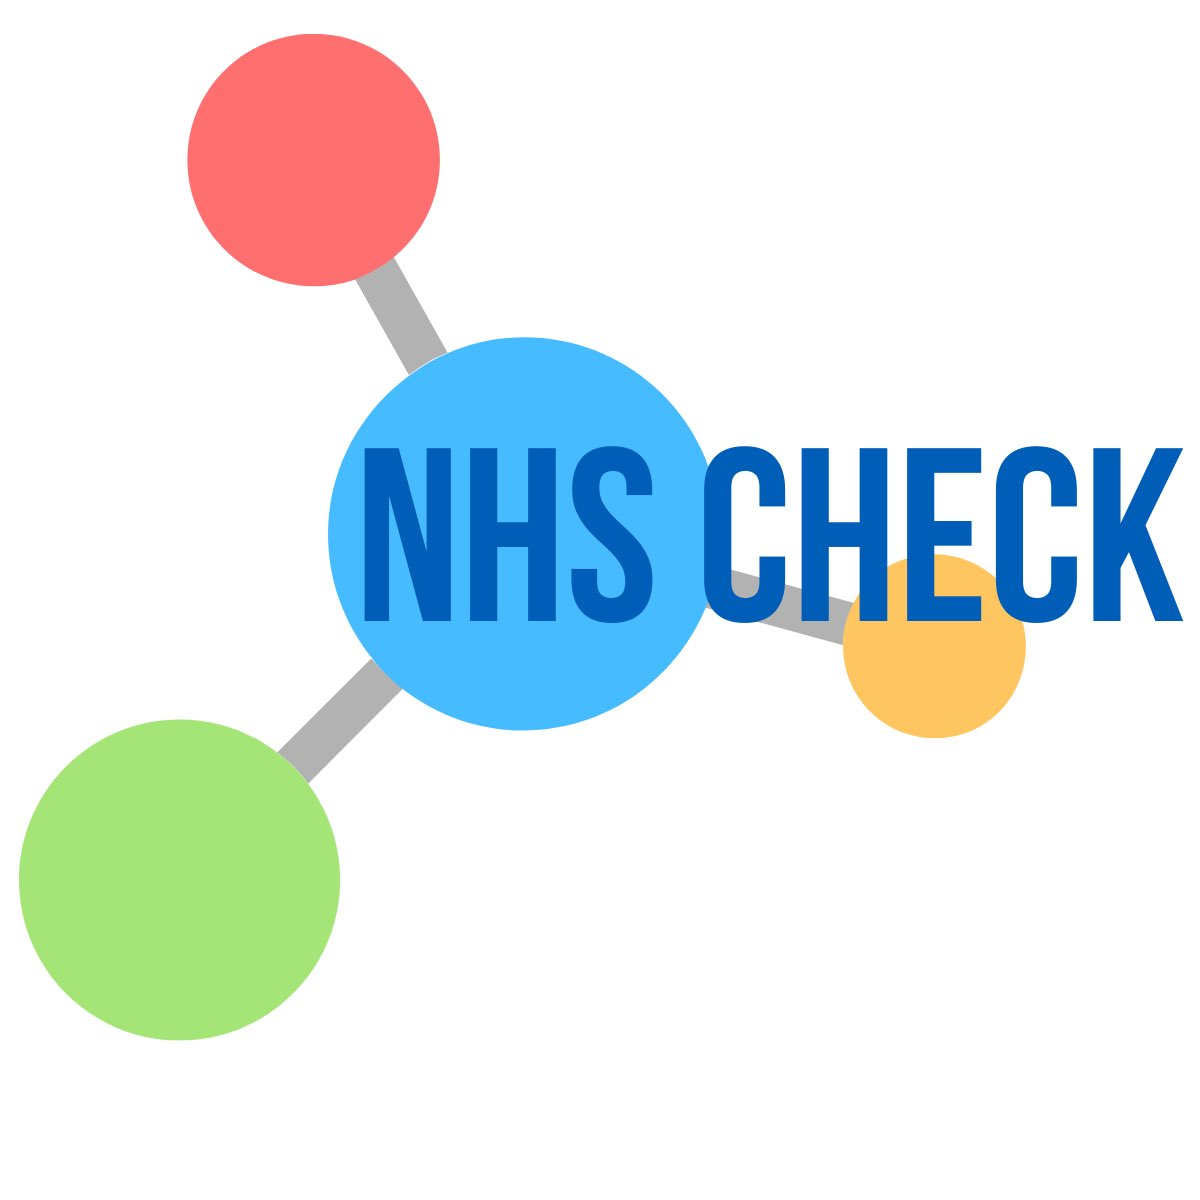 Did you know ESNEFT is taking part in the NHS CHECK study? It aims to find out how the #COVID19 pandemic is effecting the health and wellbeing of NHS staff. Find out how you can take part on the intranet news pages and please spare a few minutes if you can to share your views https://t.co/FicJVyTjFT